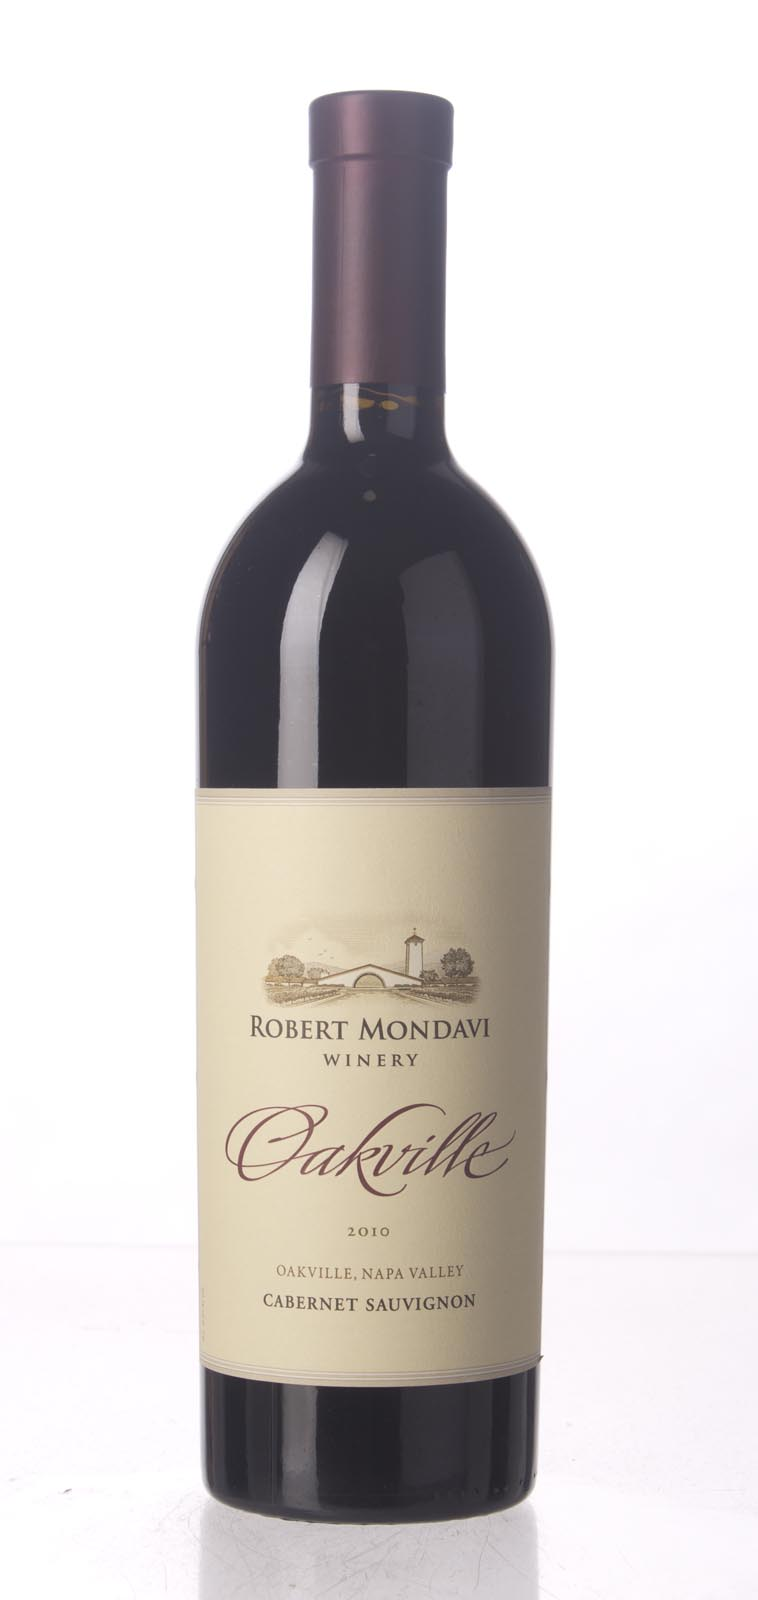 Robert Mondavi Cabernet Sauvignon Oakville 2010, 750mL (AG94, WA94+) from The BPW - Merchants of rare and fine wines.